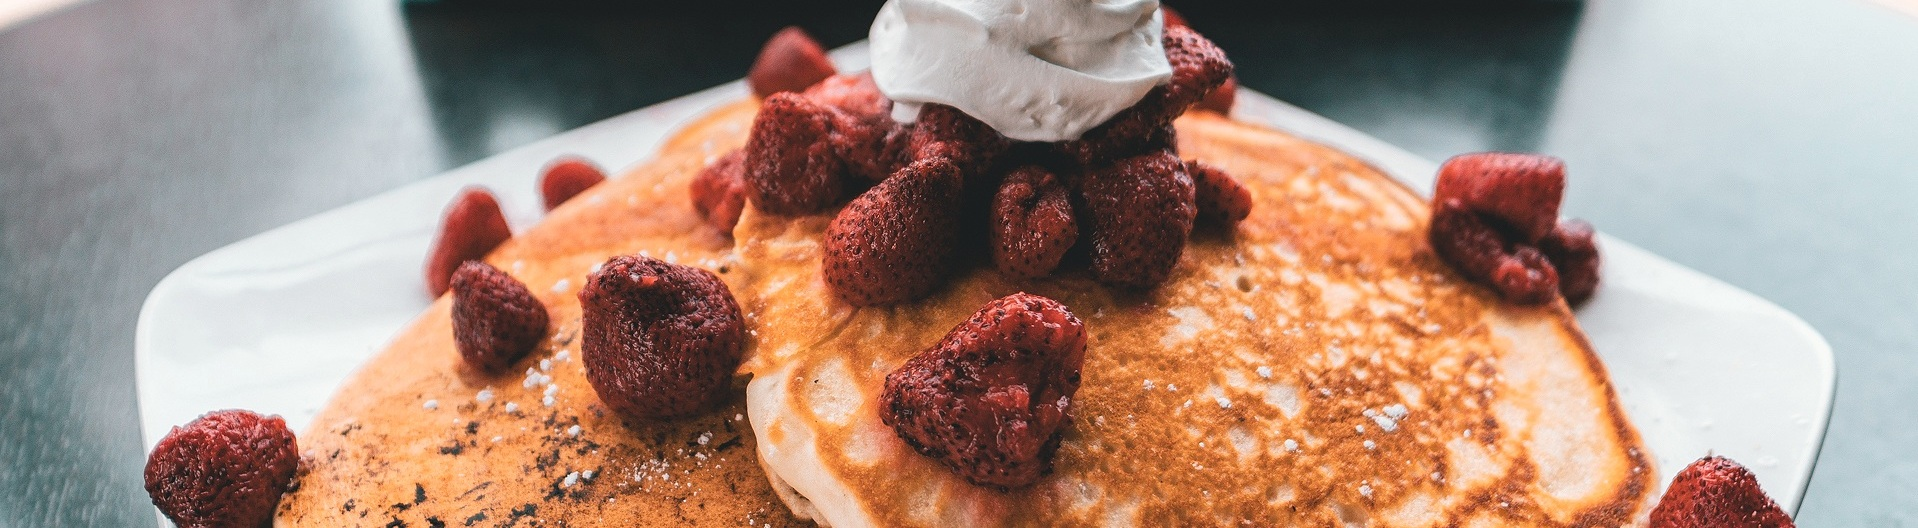 Pancakes top with strawberries